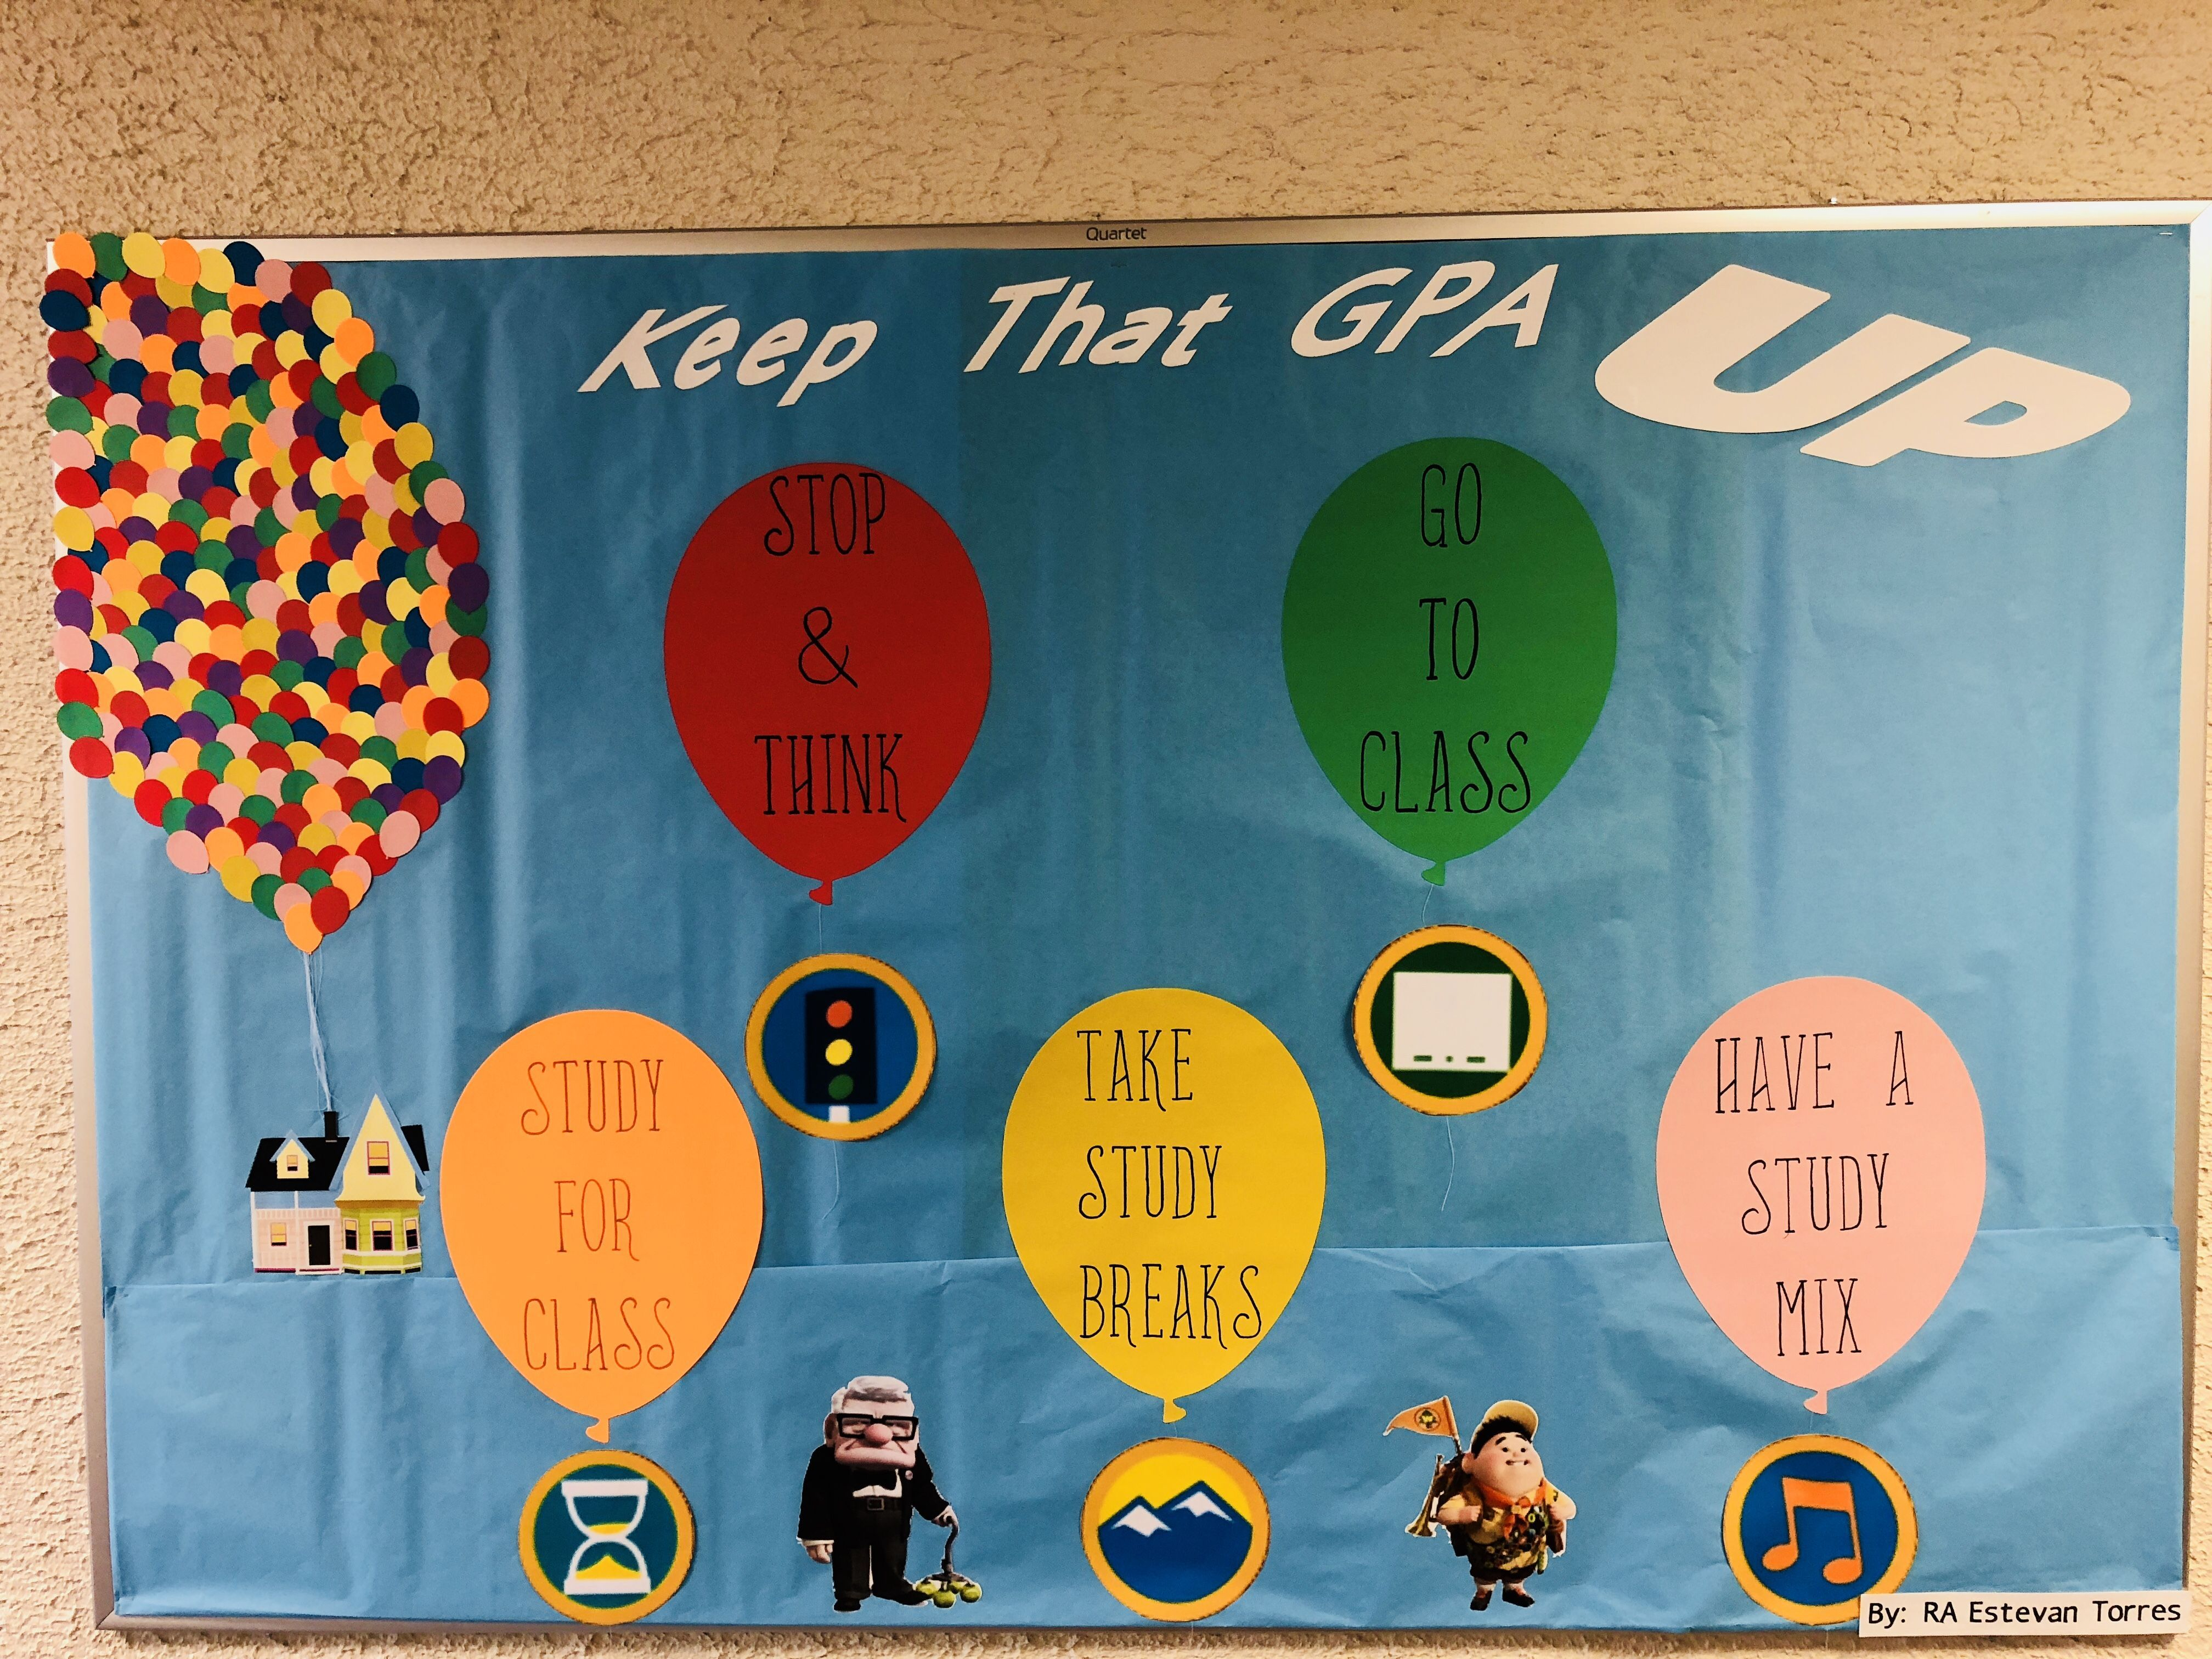 Keep that GPA UP Bulletin Board Resident Advisor, College, High School. Balloons, Up the Movie Academic Success RA. Up inspired #rabulletinboards Keep that GPA UP Bulletin Board Resident Advisor, College, High School. Balloons, Up the Movie Academic Success RA. Up inspired #novemberbulletinboards